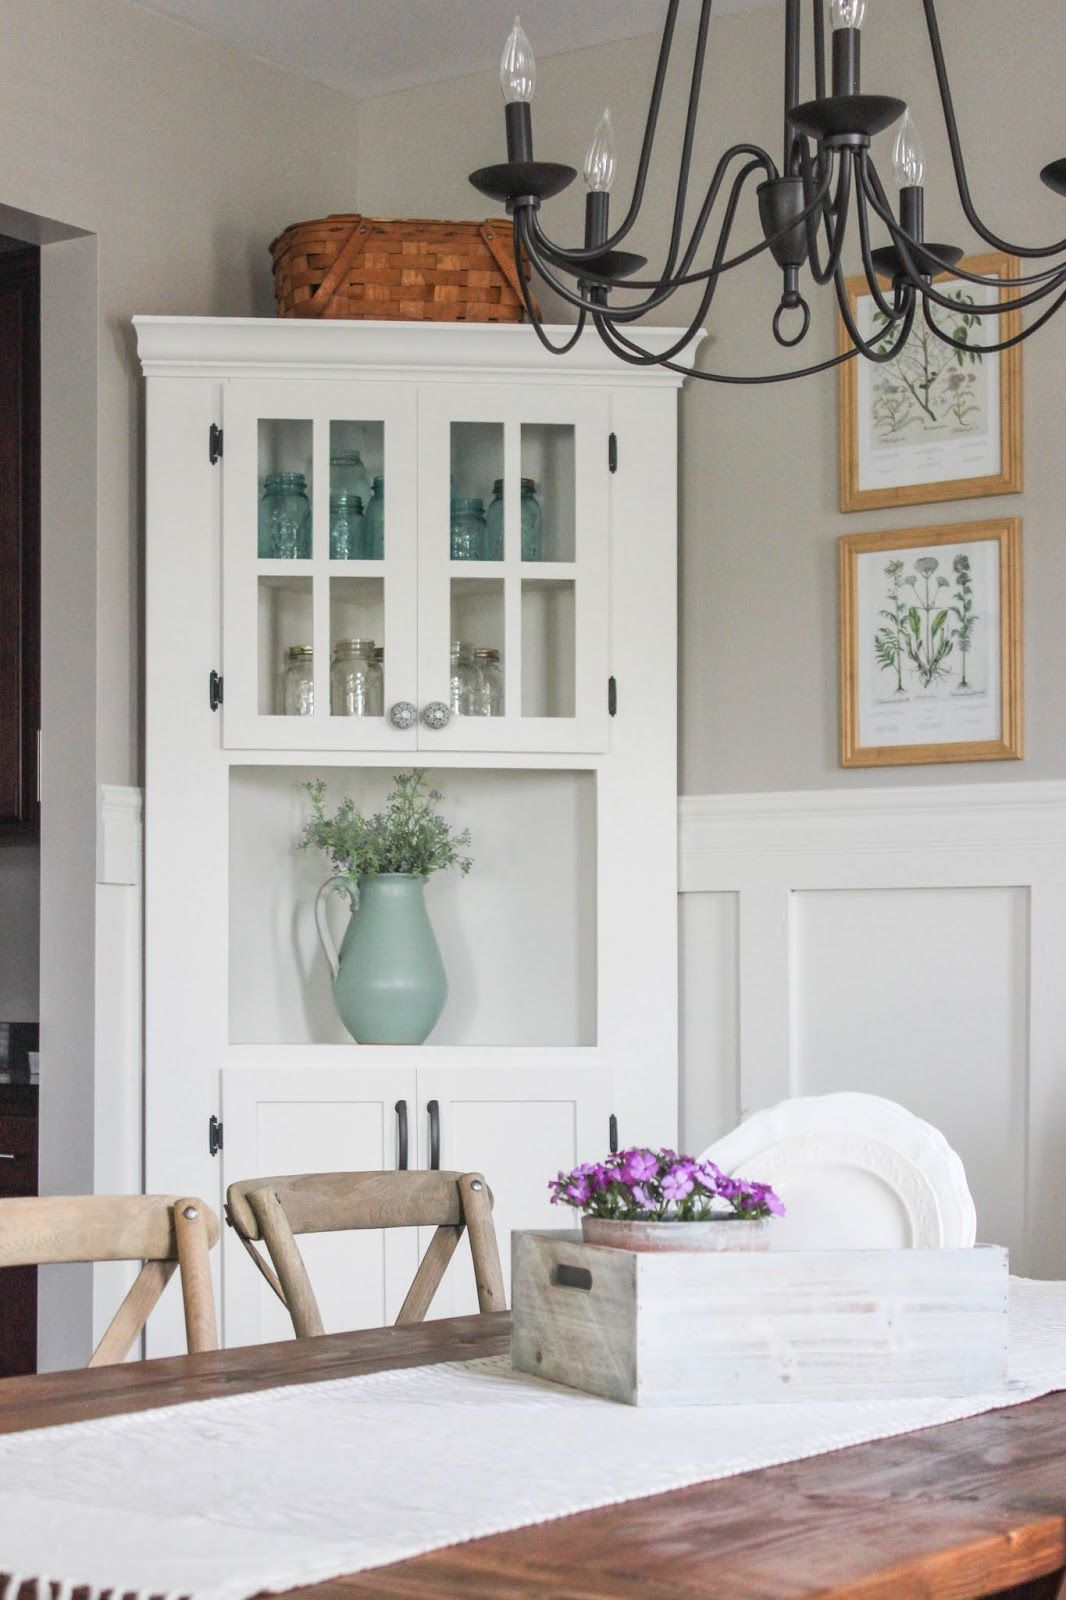 Diy Farmhouse Corner Cabinet Dining Room Corner Home Country House Decor